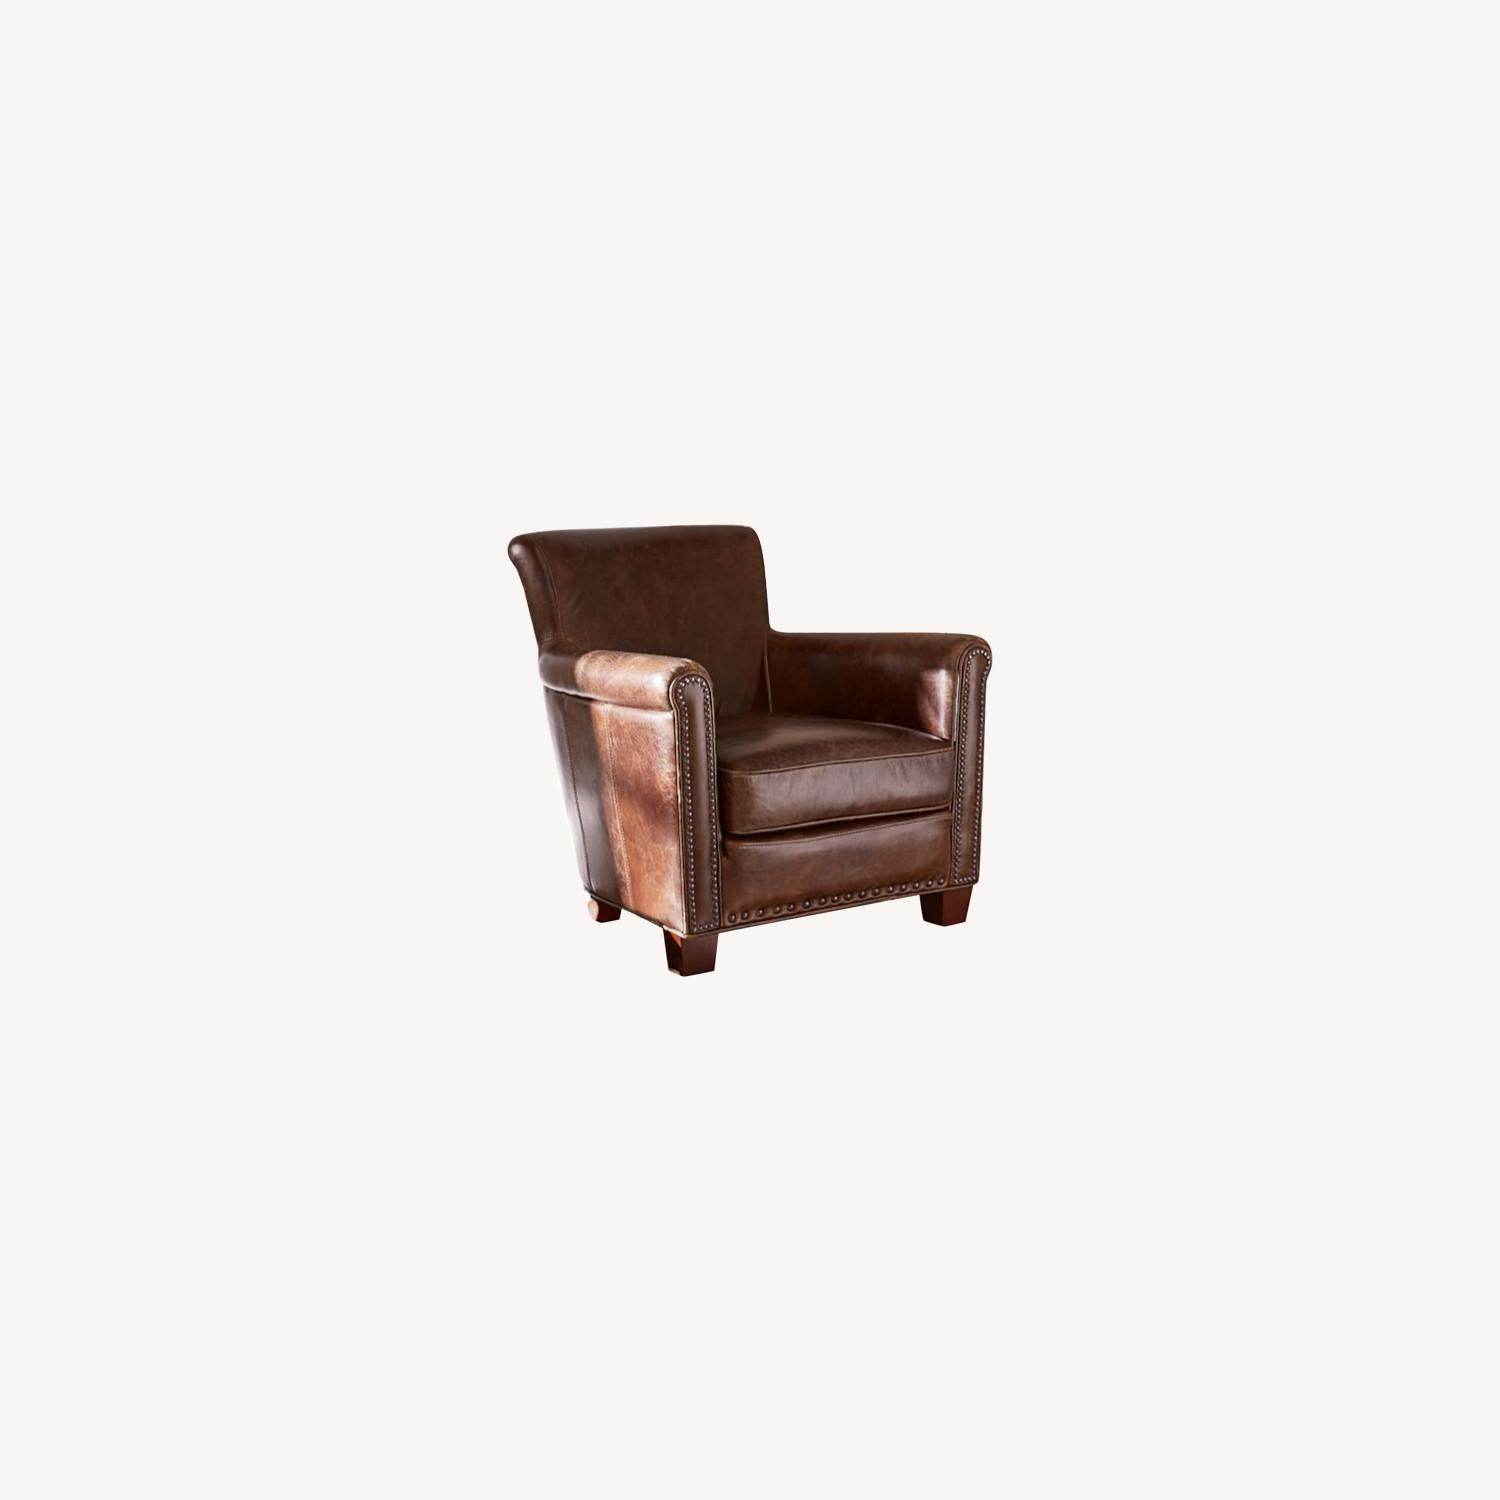 Pottery Barn Accent Chair Dark Brown Leather - image-0